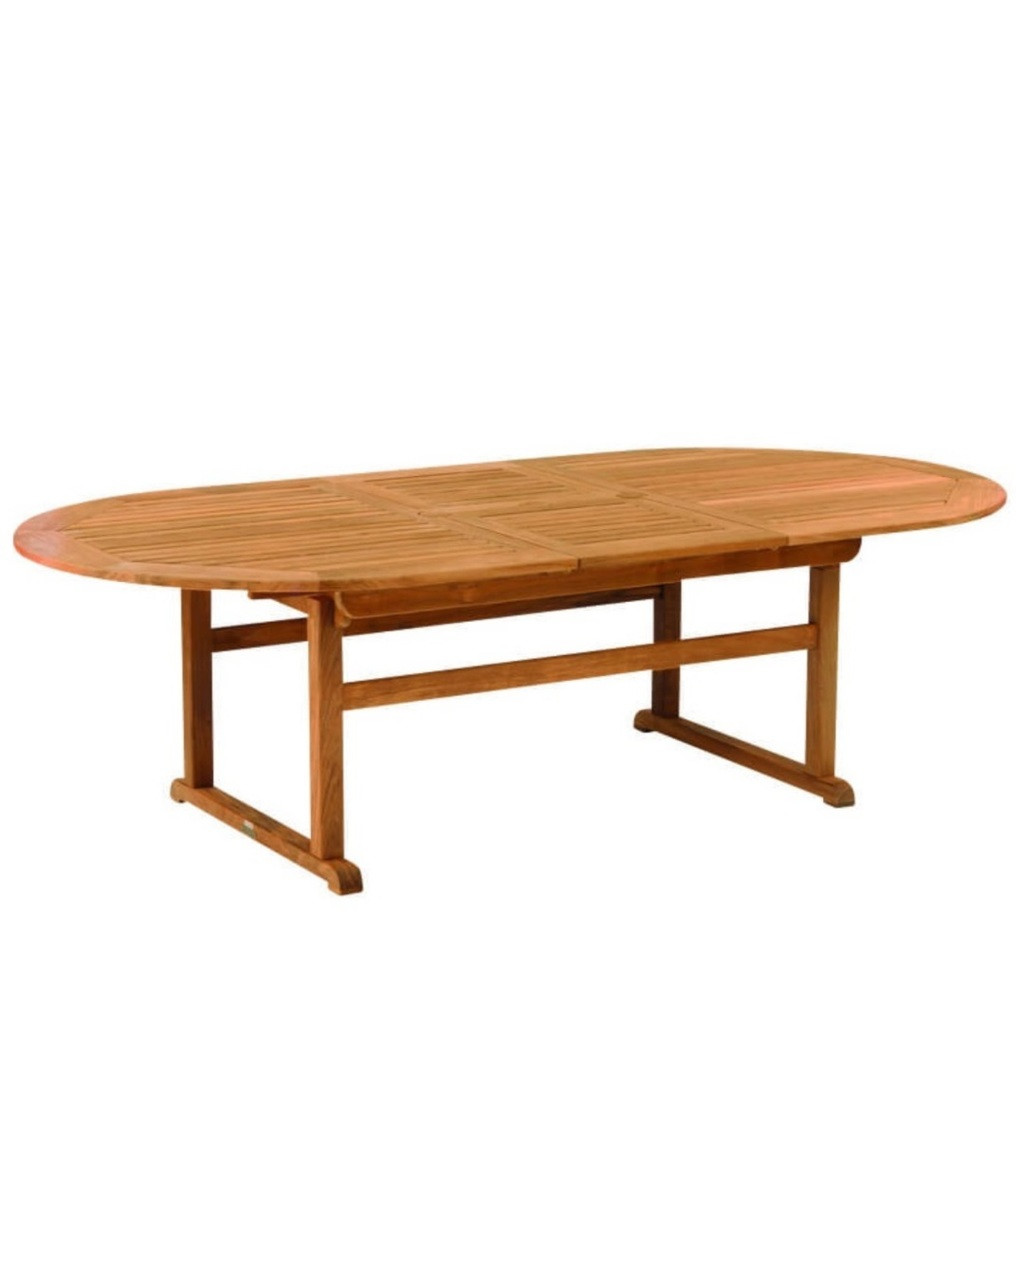 Kingsley Bate Essex Oval Extension Dining Table TR - Teak oval extension dining table